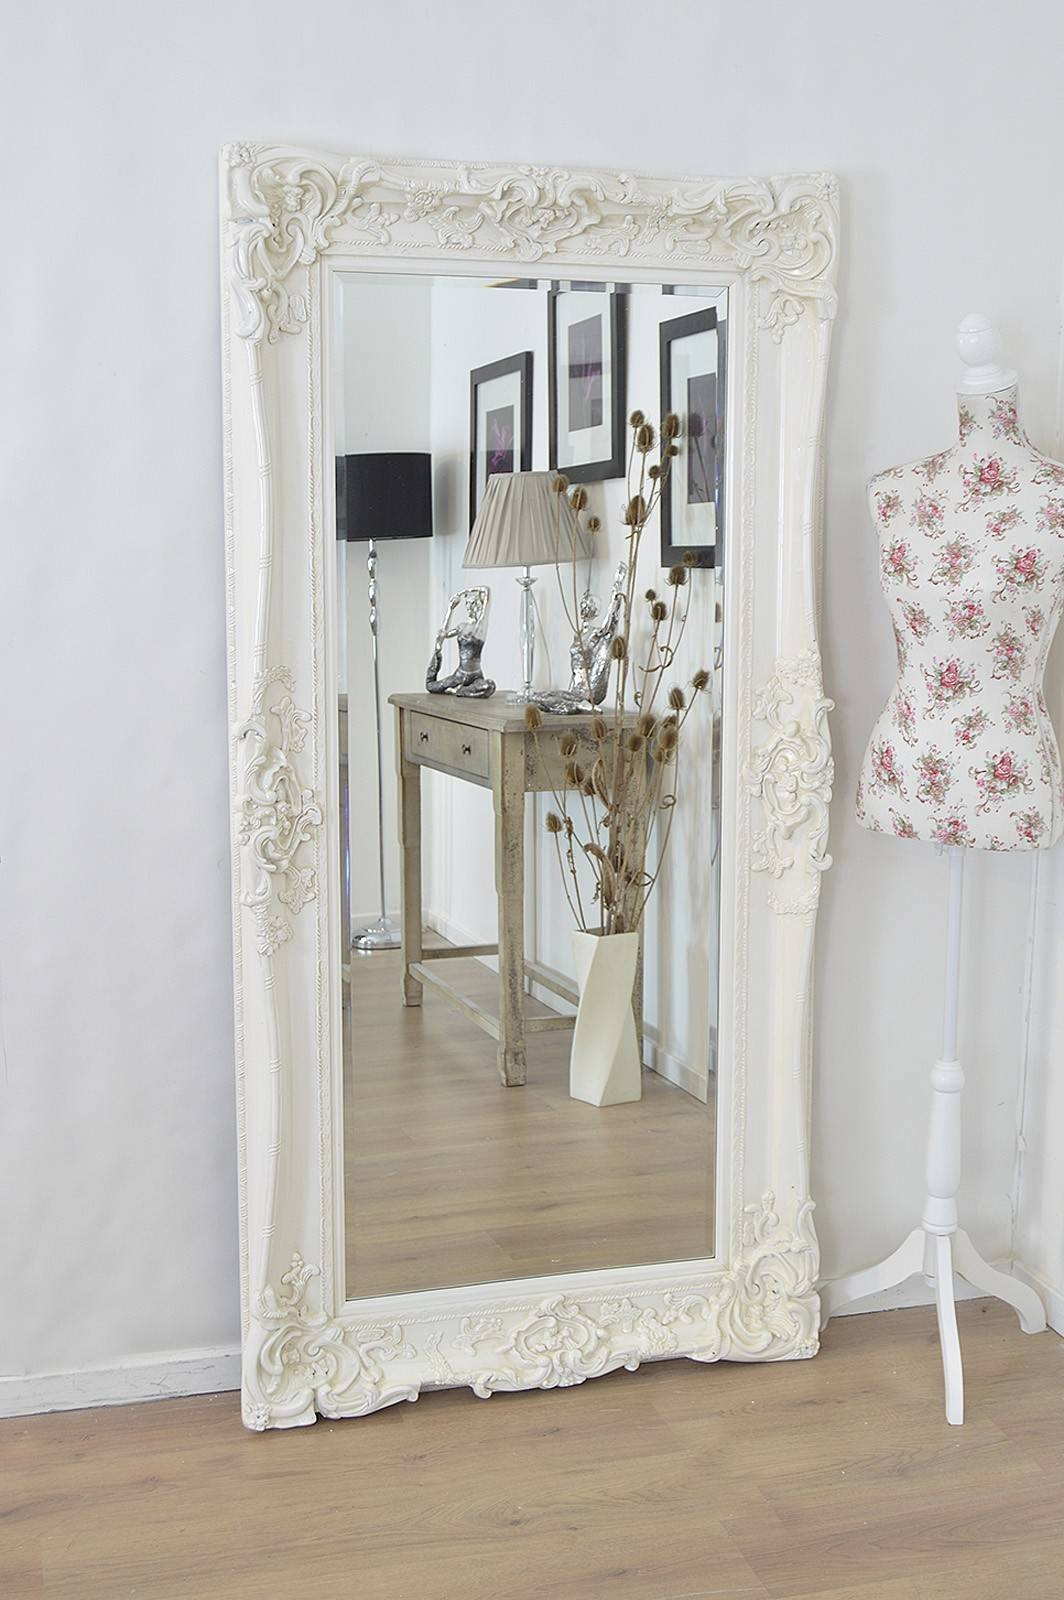 Shabby Chic Wall Mirror 40 Nice Decorating With Vintage Shabby inside Large White Ornate Mirrors (Image 21 of 25)